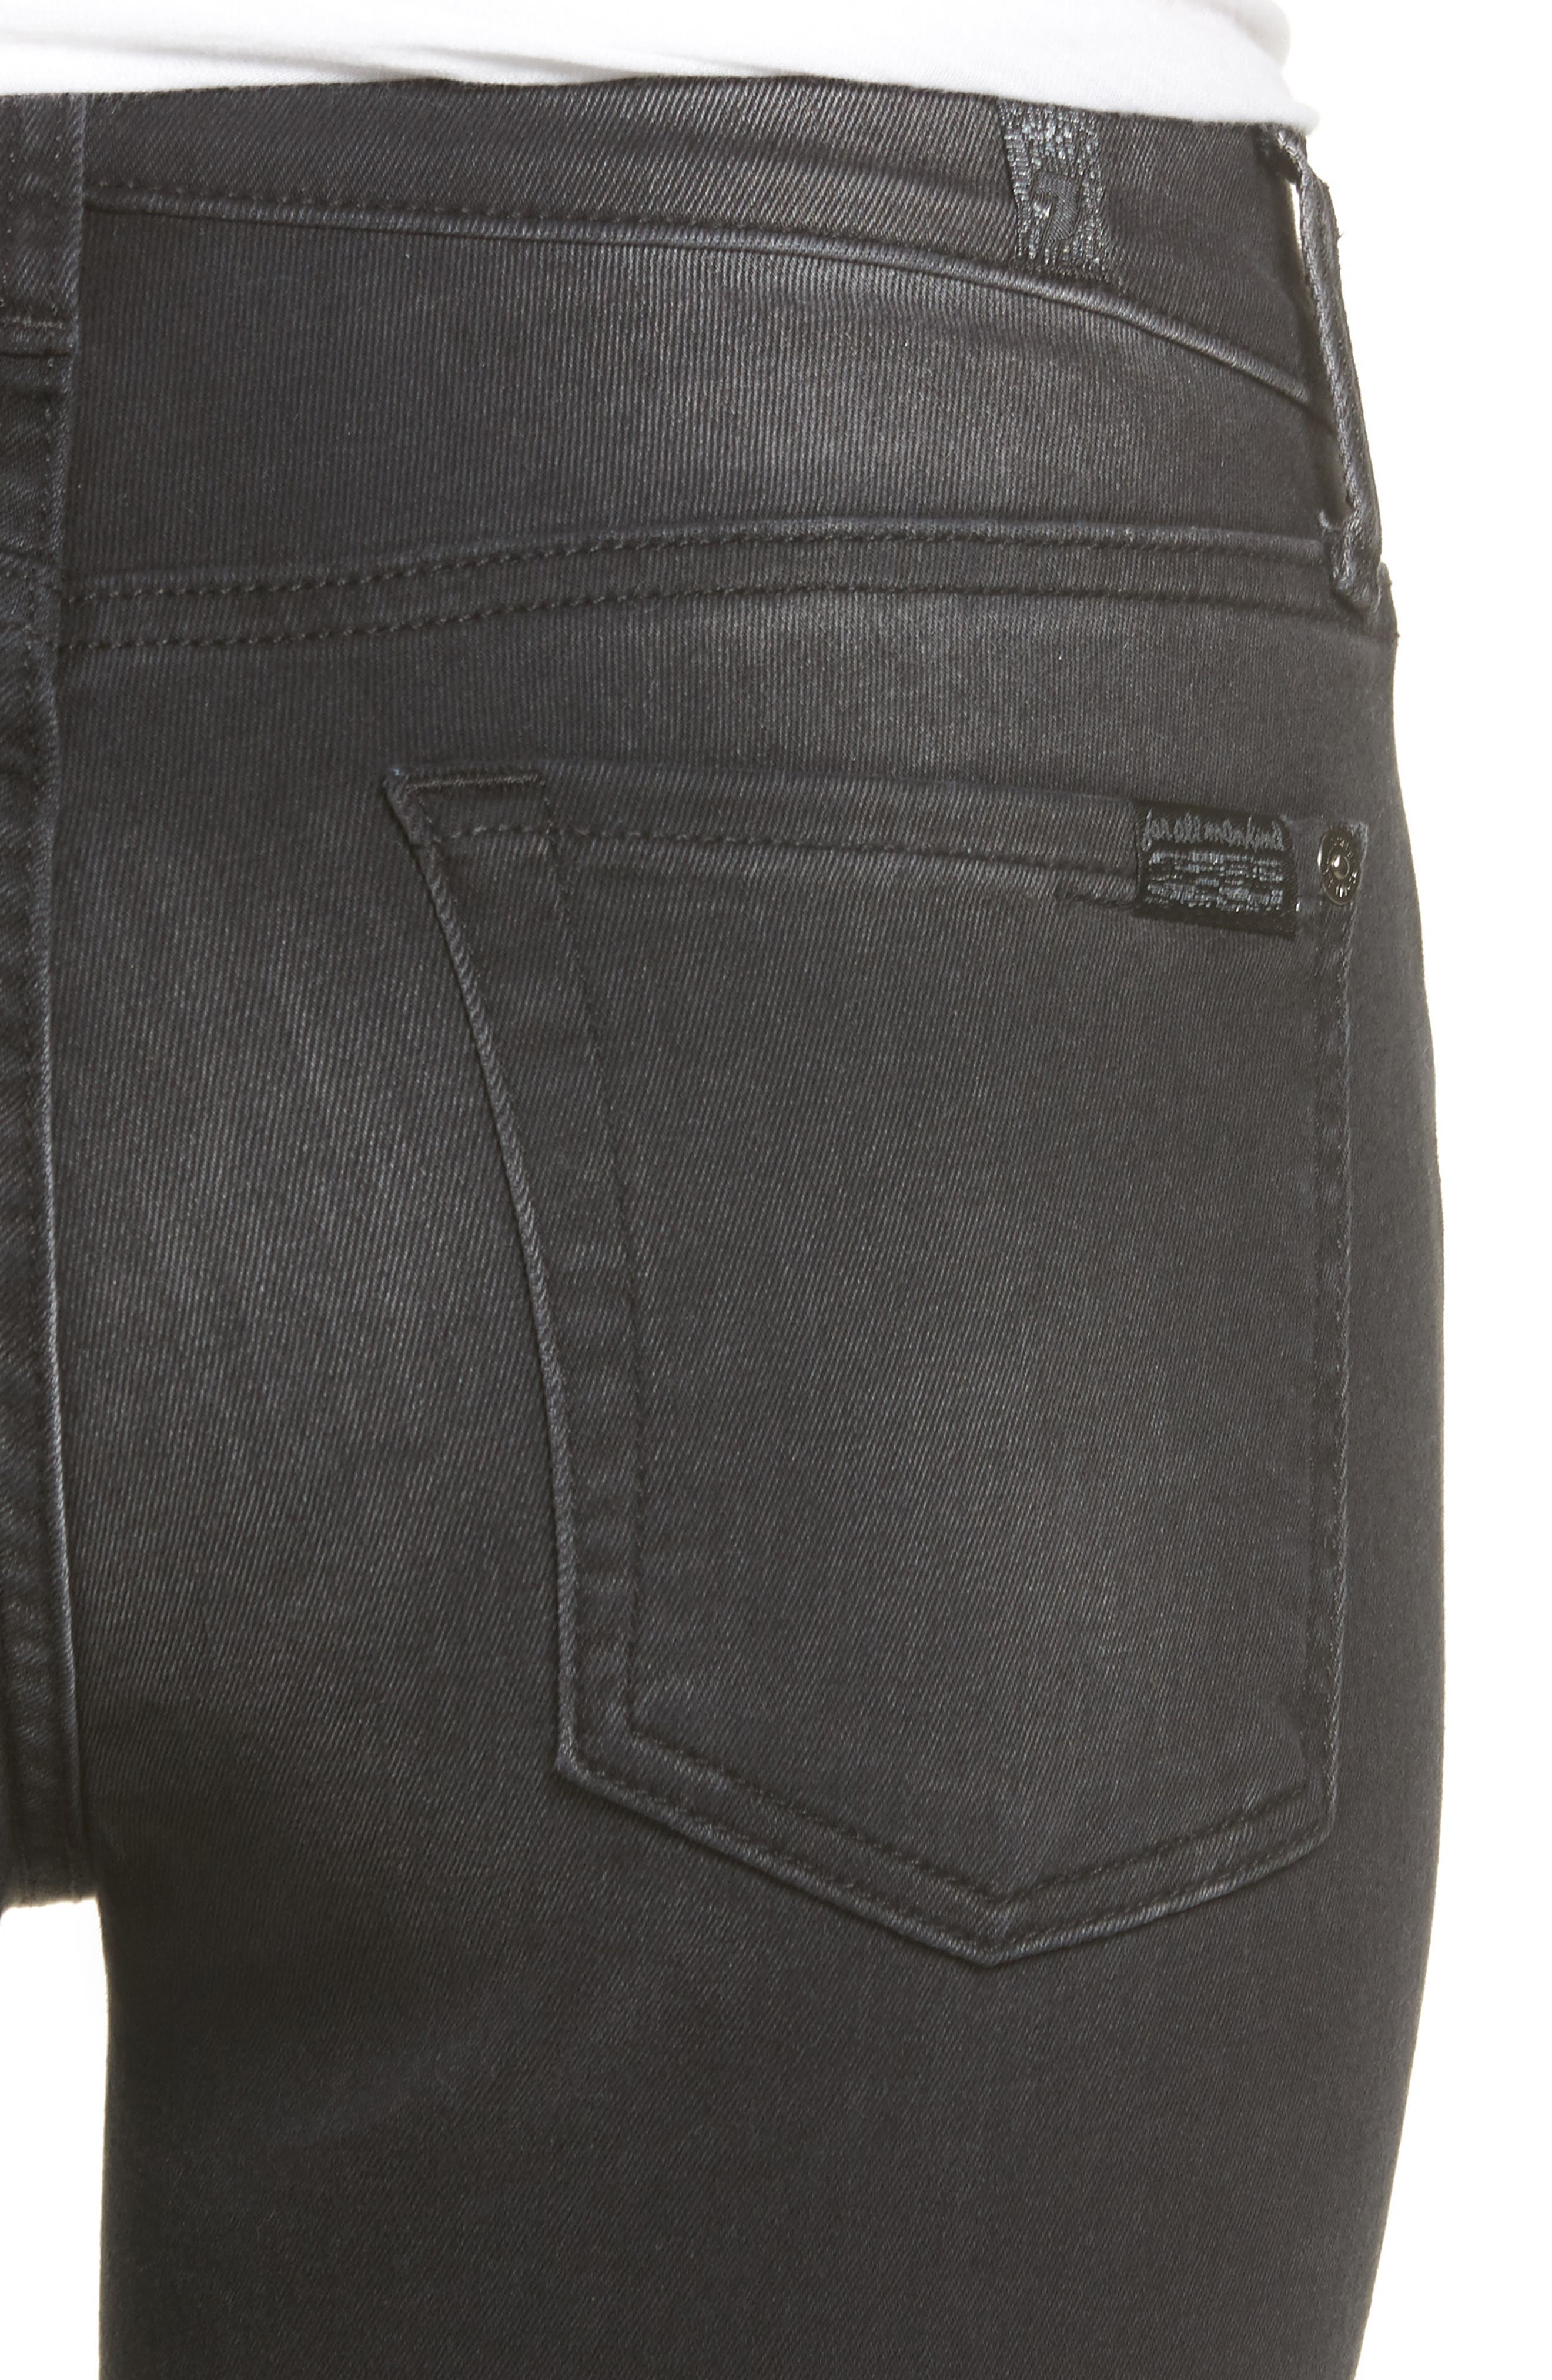 Seven7 The Ankle Skinny Jeans,                             Alternate thumbnail 4, color,                             004